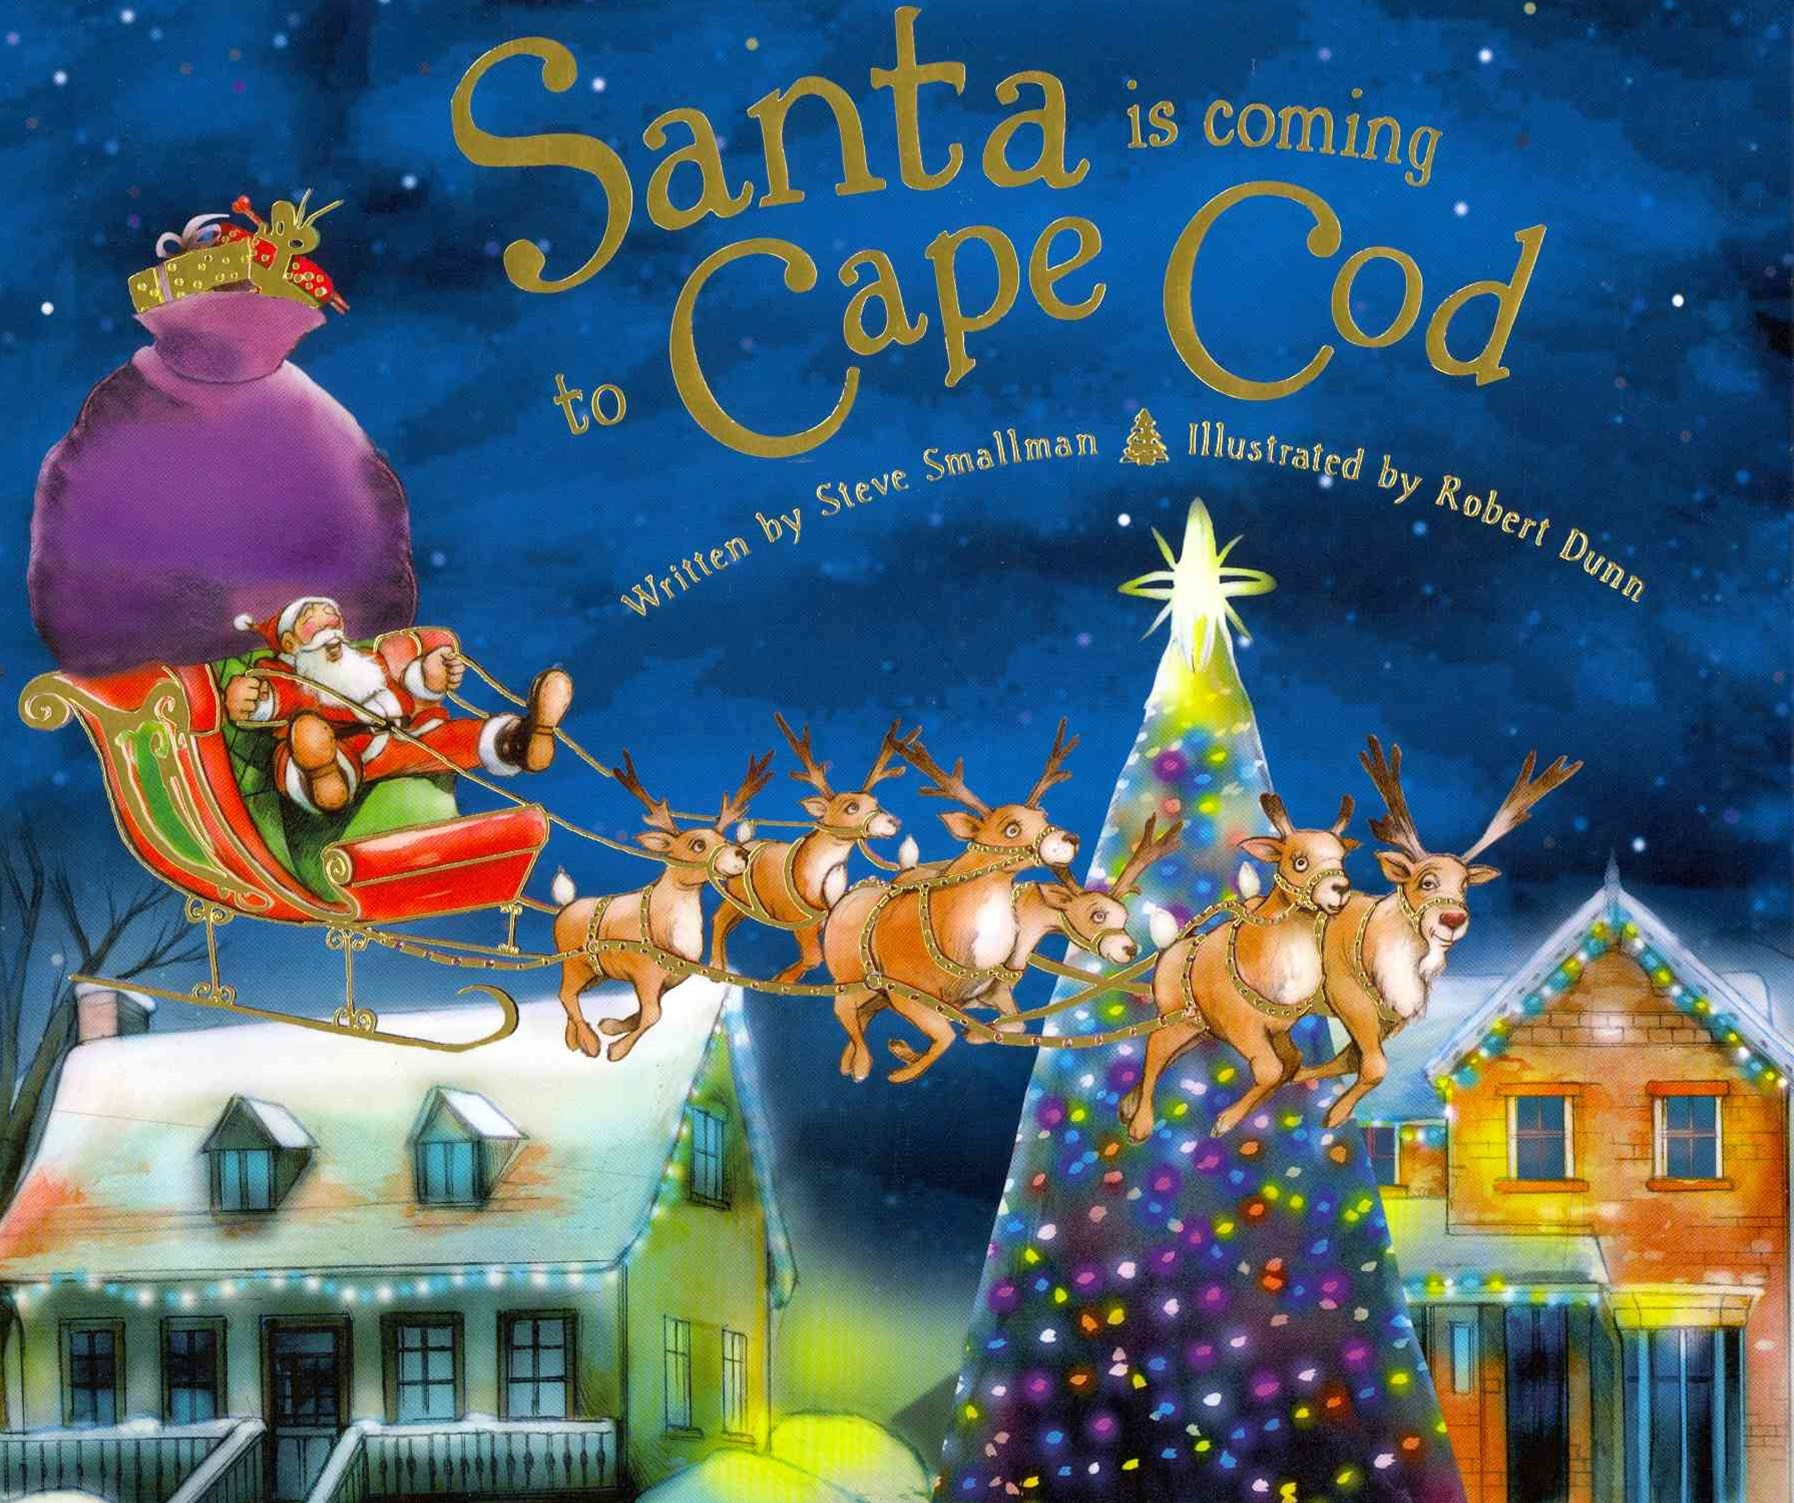 Santa Is Coming to Cape Cod